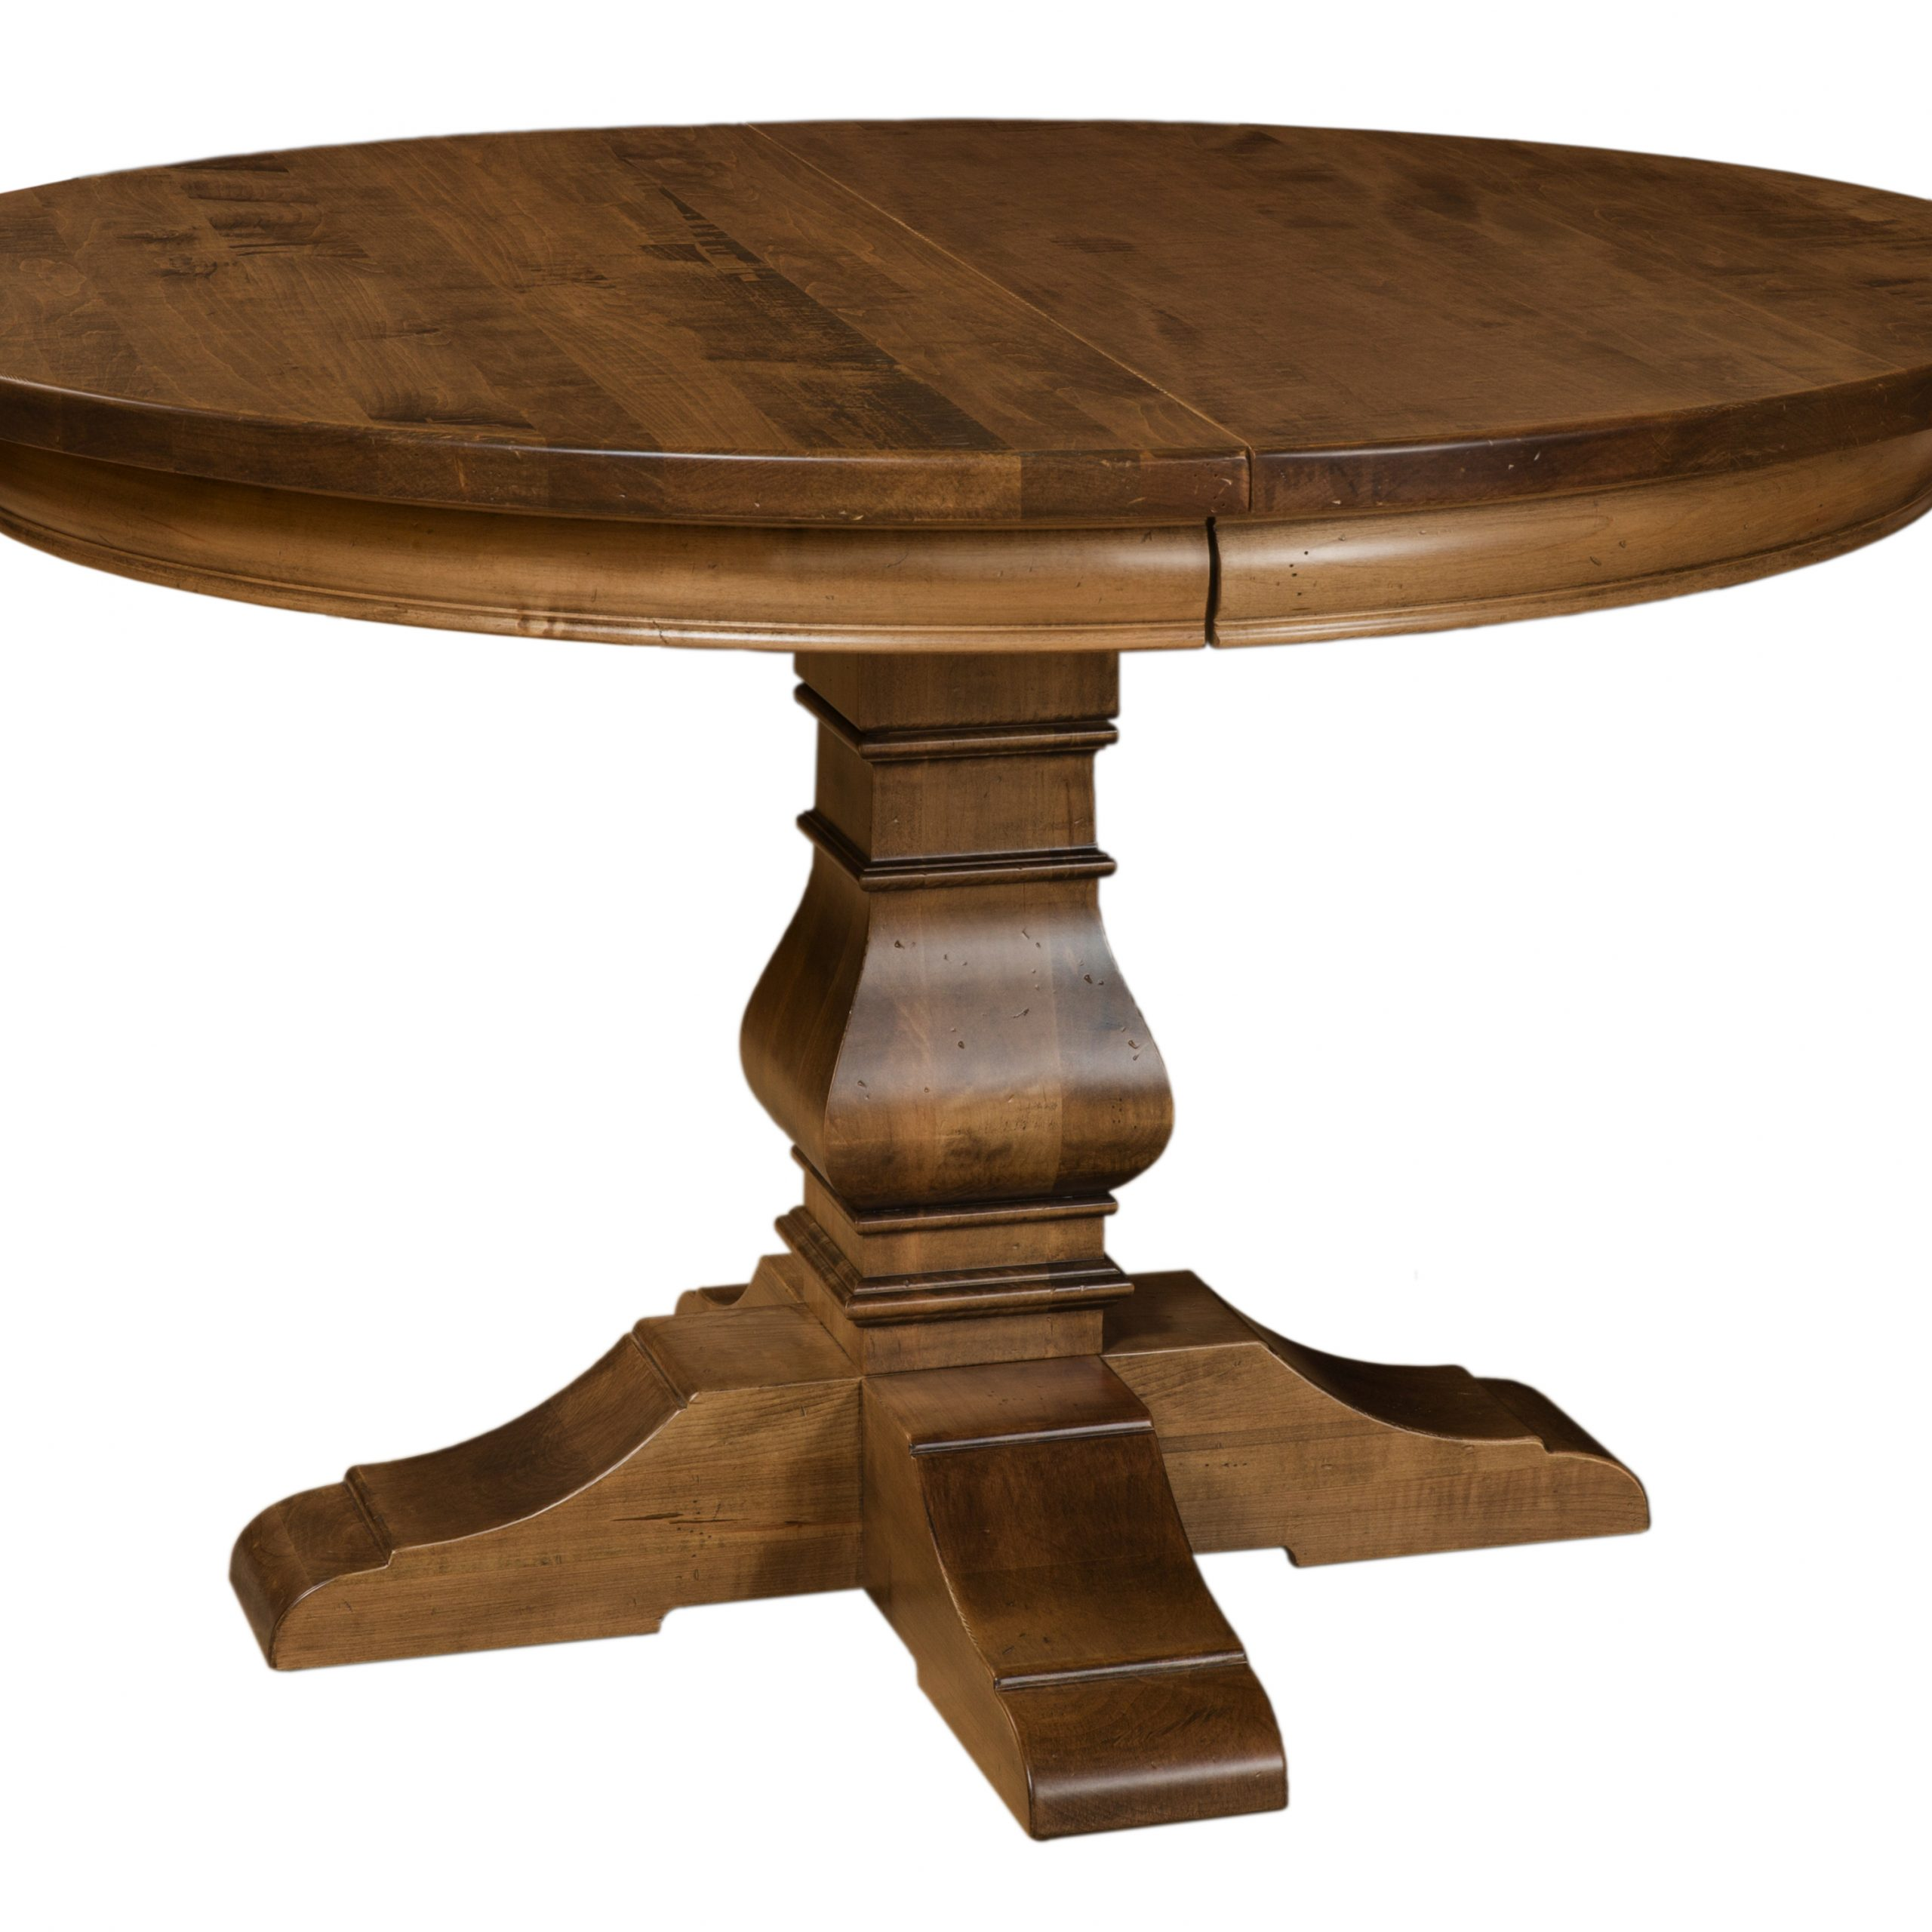 Tuscany Single Pedestal Table | Martin'S Furniture With Regard To 2017 Gaspard Extendable Maple Solid Wood Pedestal Dining Tables (View 7 of 15)